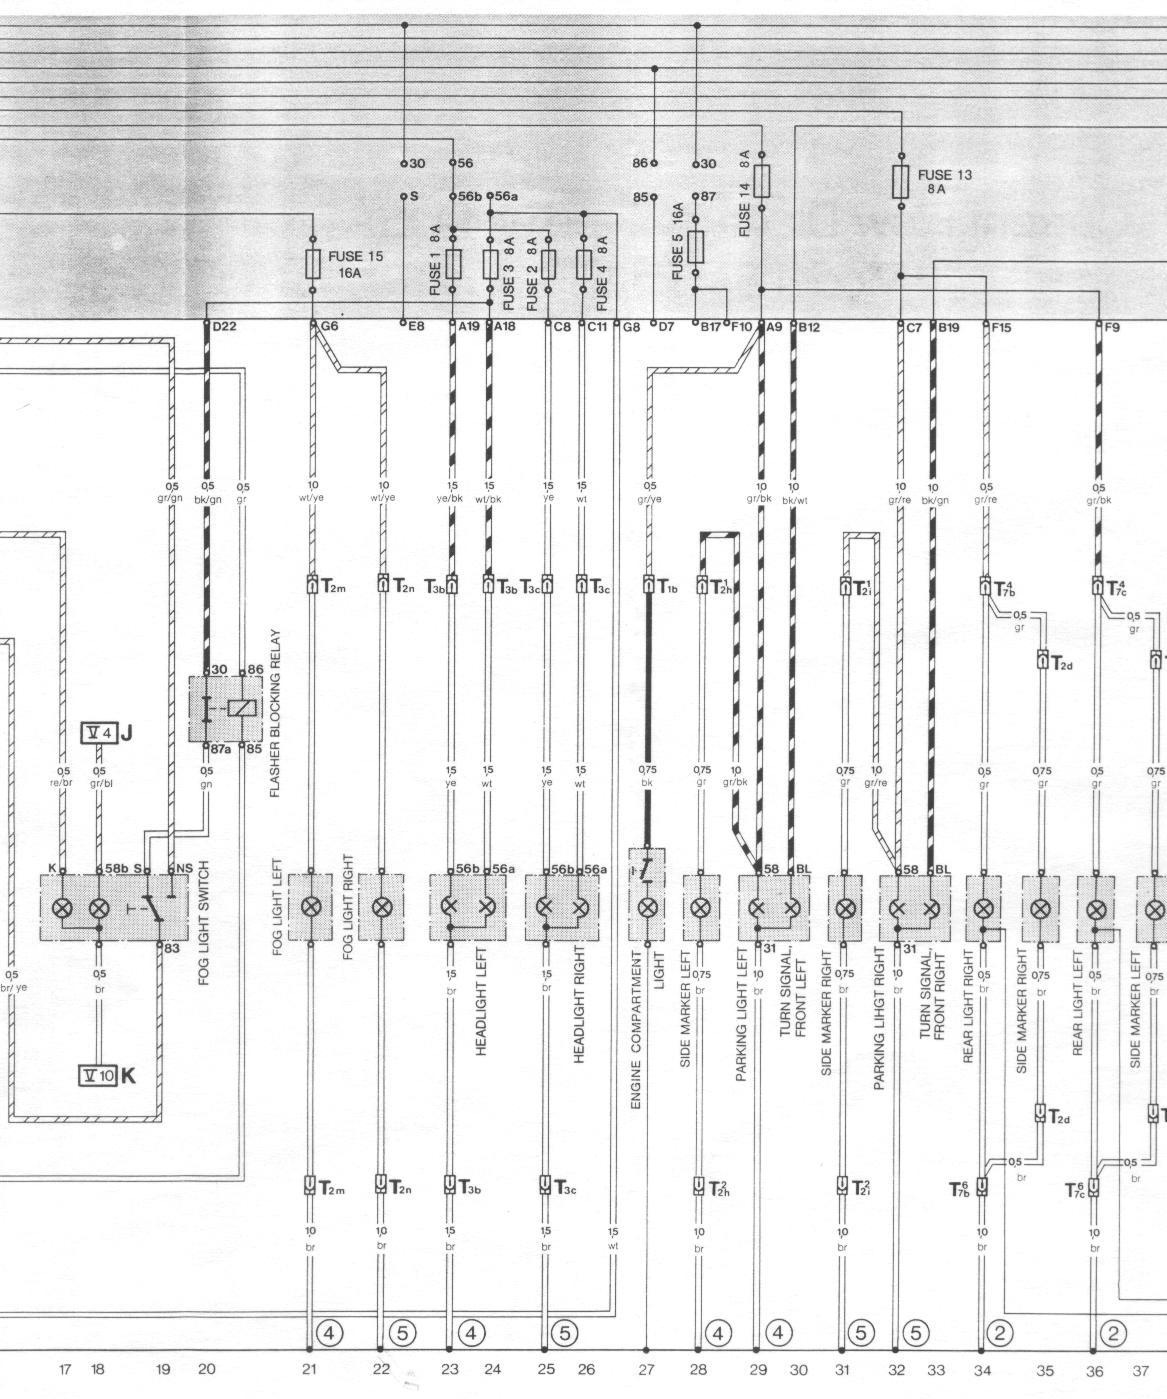 944_84_2_2 porsche 924 fuse box diagram fuse box diagram 1981 porsche 924 1986 porsche 944 fuse box diagram at crackthecode.co